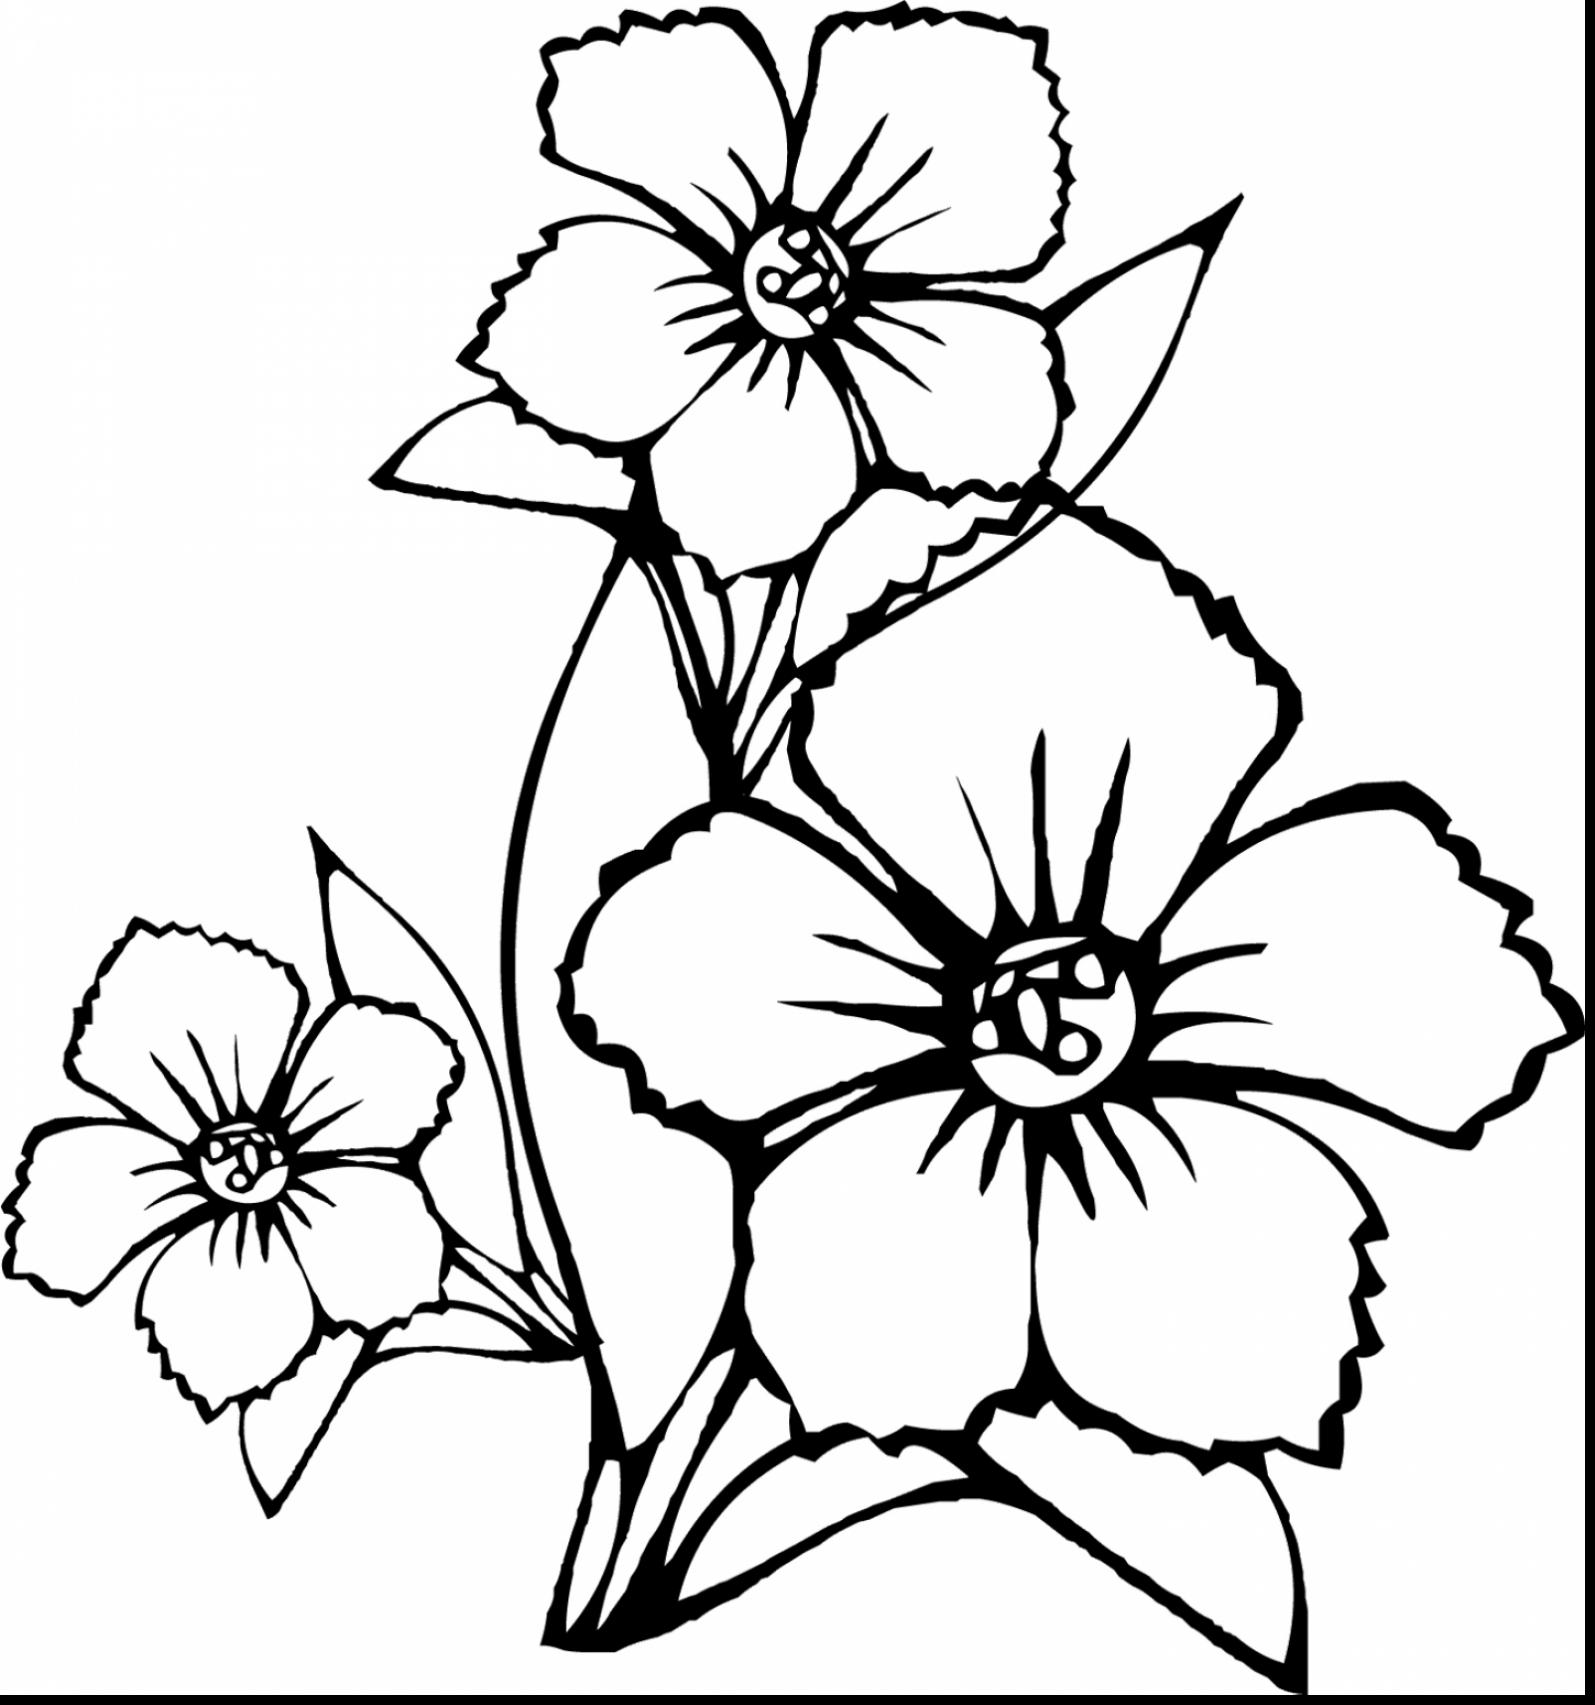 1595x1705 Extraordinary Bee And Flowers Coloring Sheet With Pages